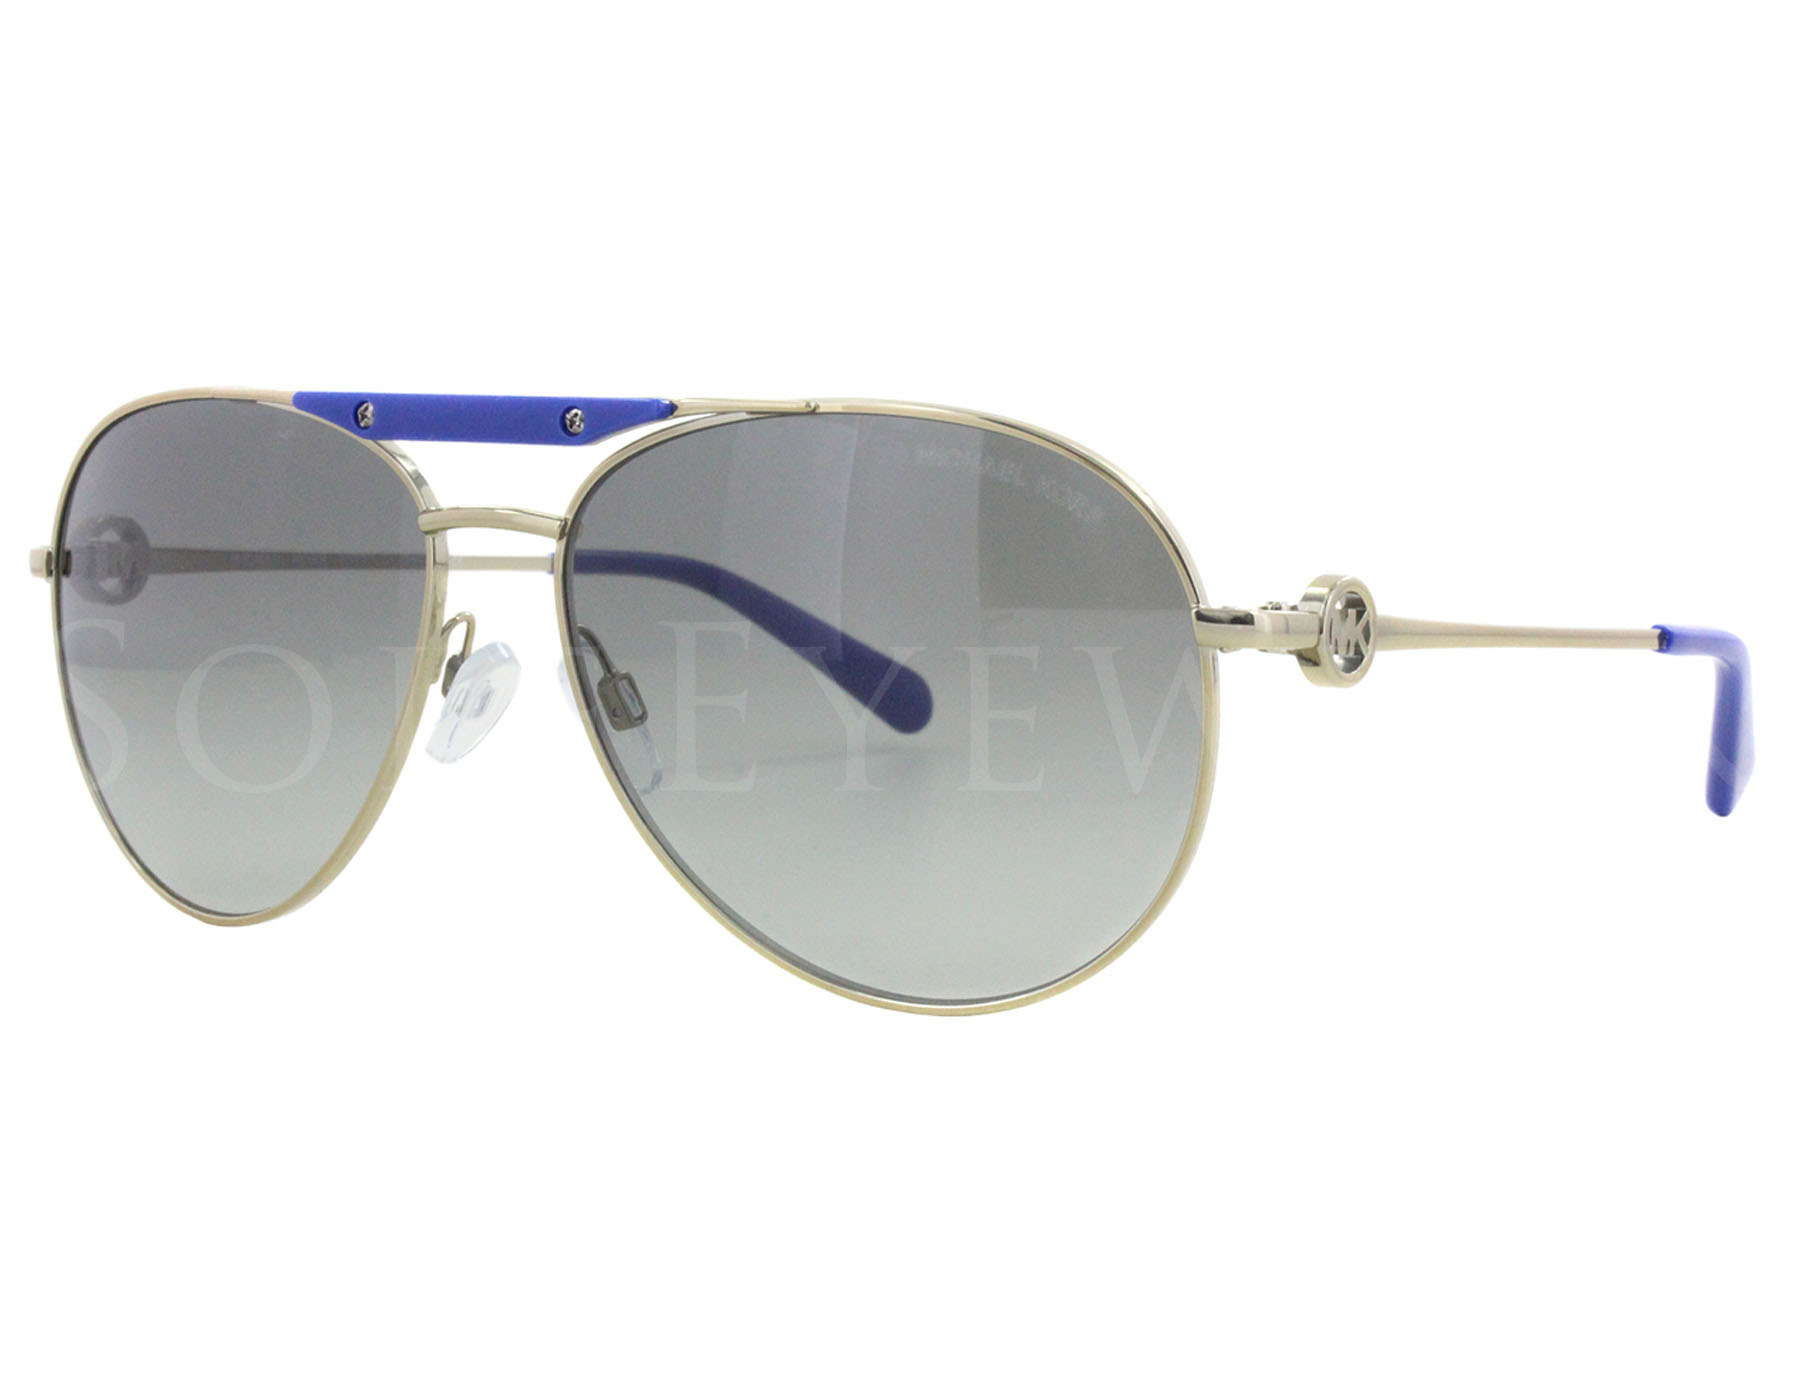 94d748703382e Details about NEW Michael Kors Zanzibar MK 5001 100411 MK Gold   Smoke  Gradient Sunglasses